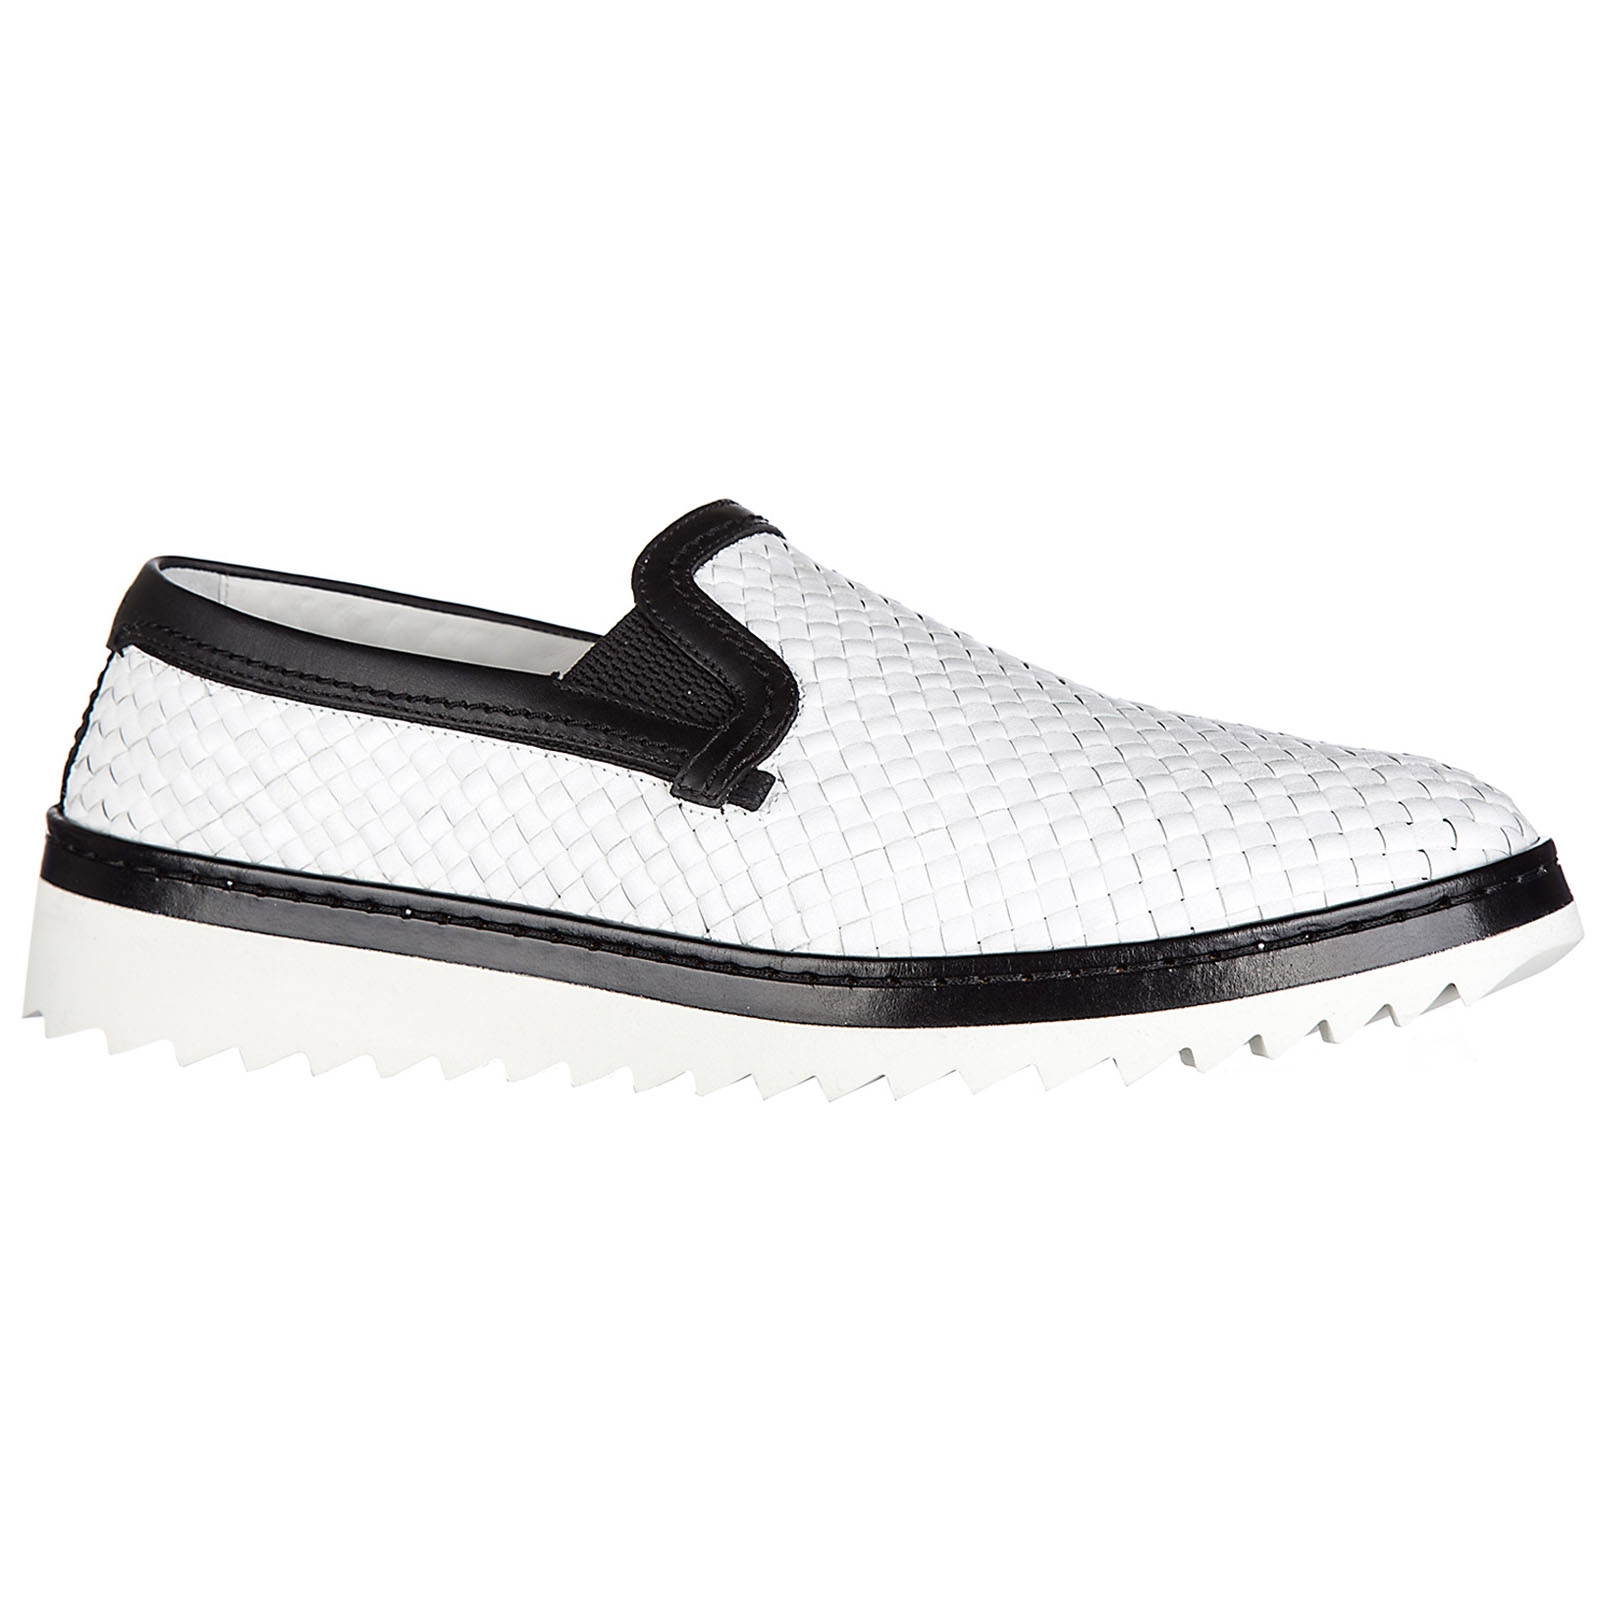 Men's leather slip on sneakers